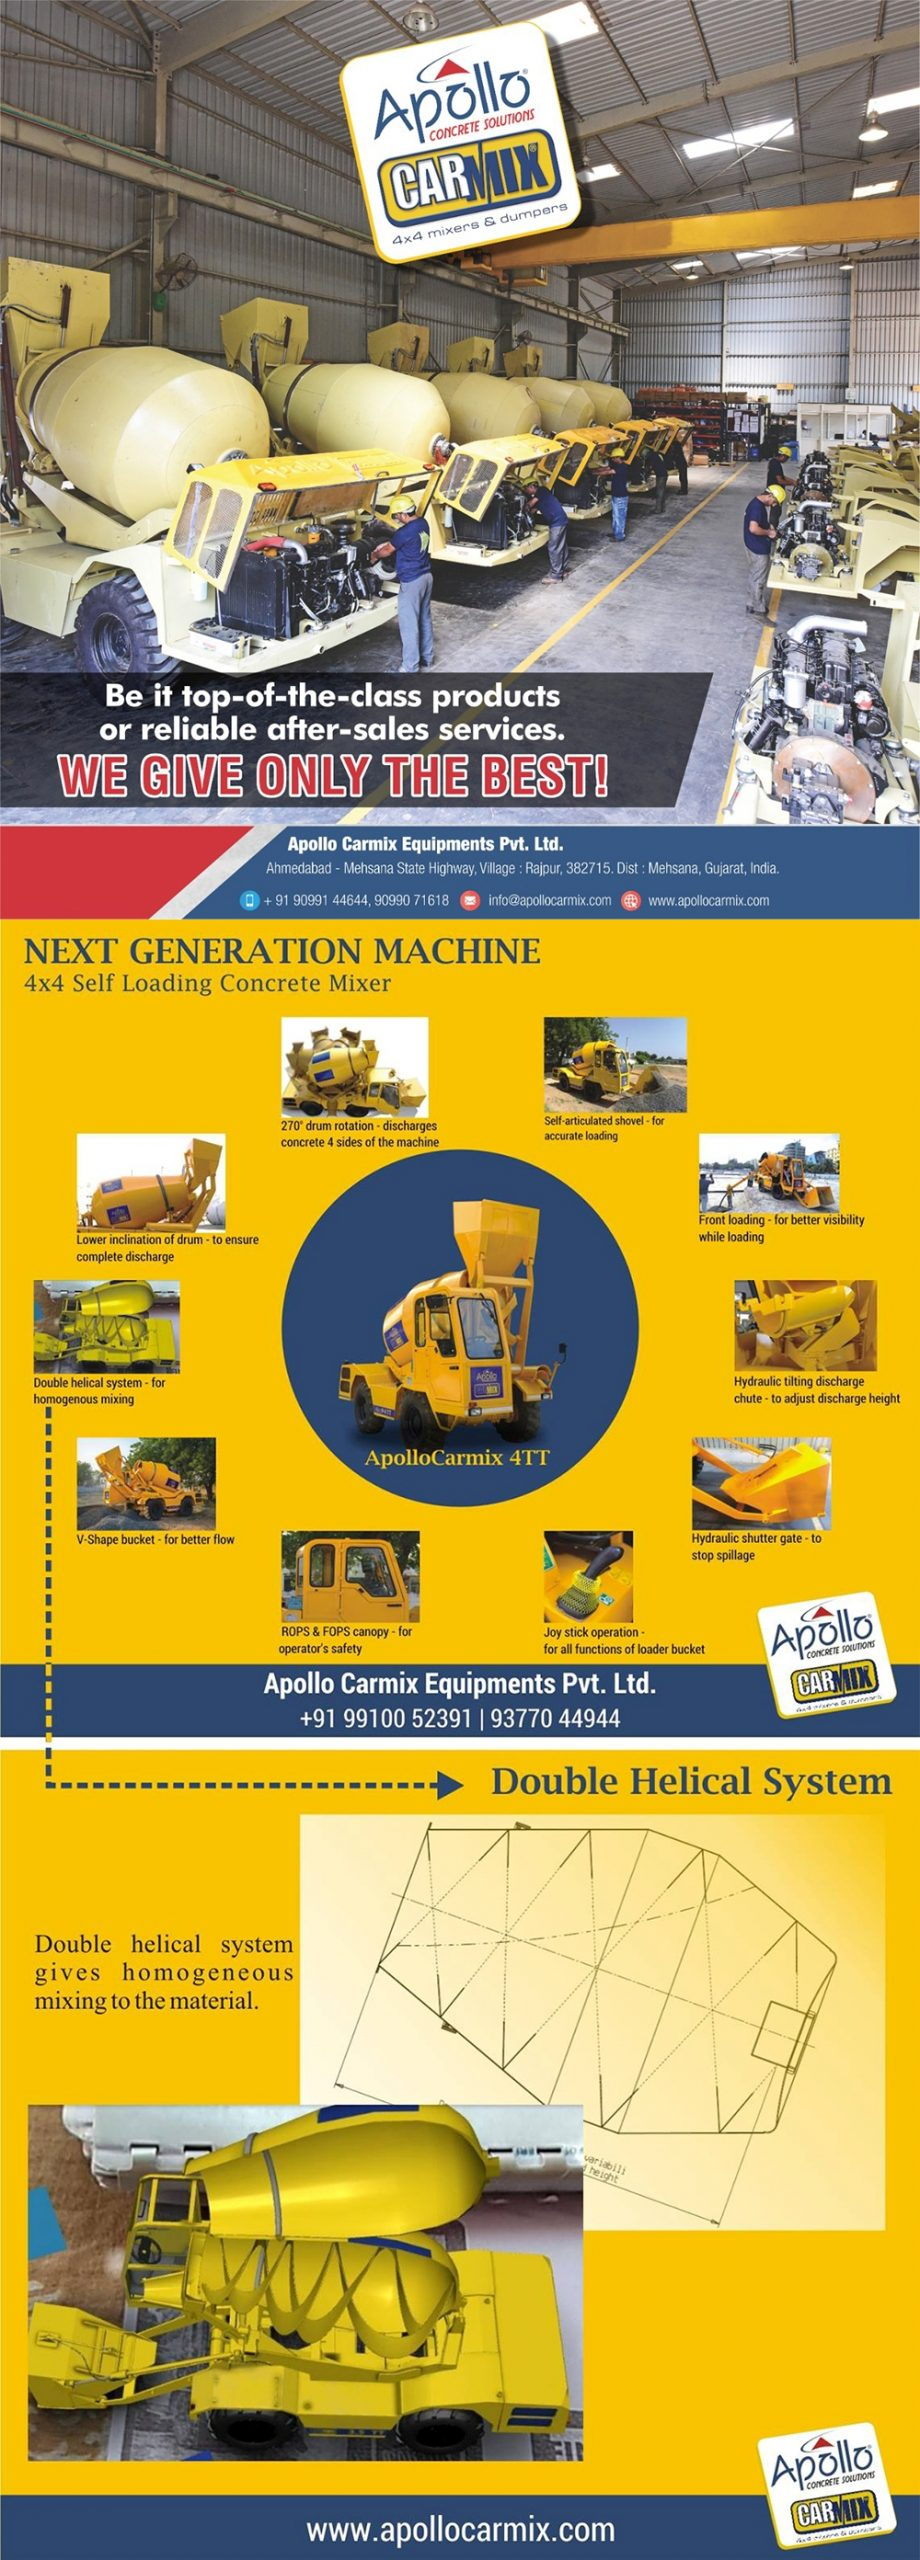 Rising Demand of Self-Loading Concrete Mixers in African Countries